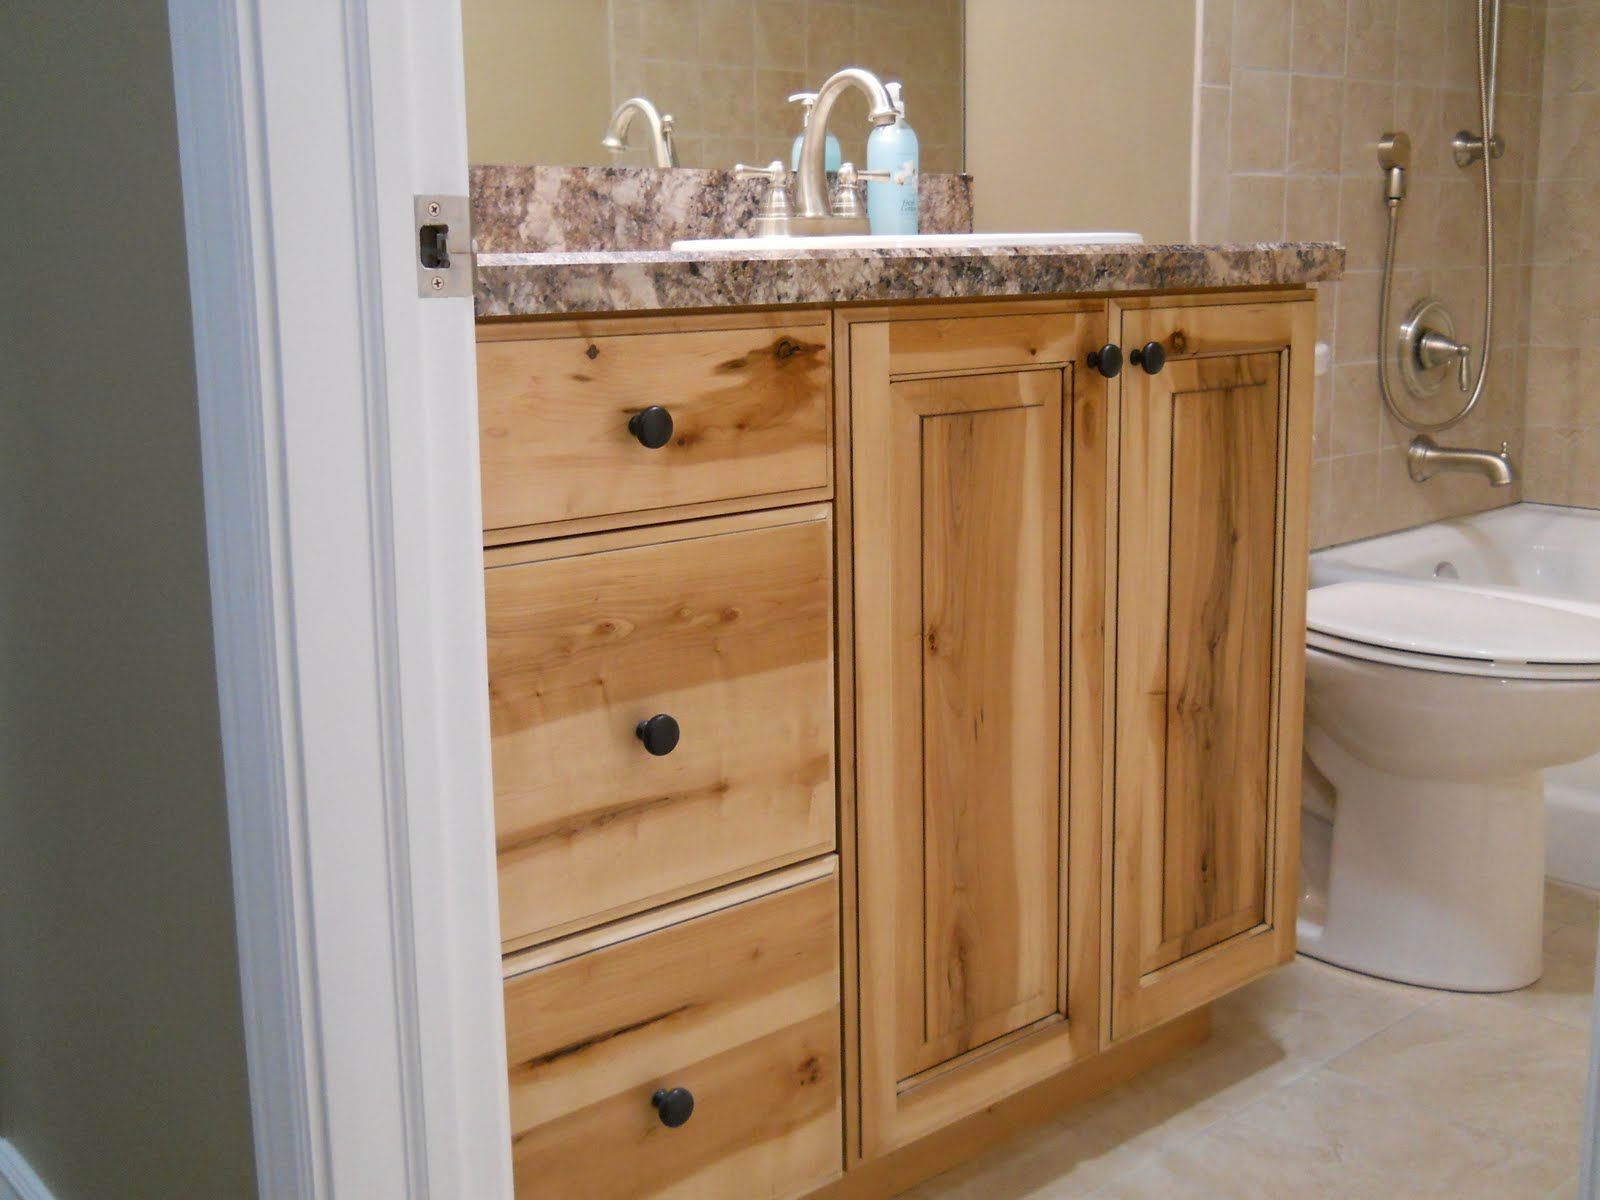 Knotty Pine Cabinet Rustic Bathroom Vanities Newly Finished Basement Cabinets In Rustic Ma Rustic Bathroom Vanities Bathroom Vanity Bathroom Vanity Designs